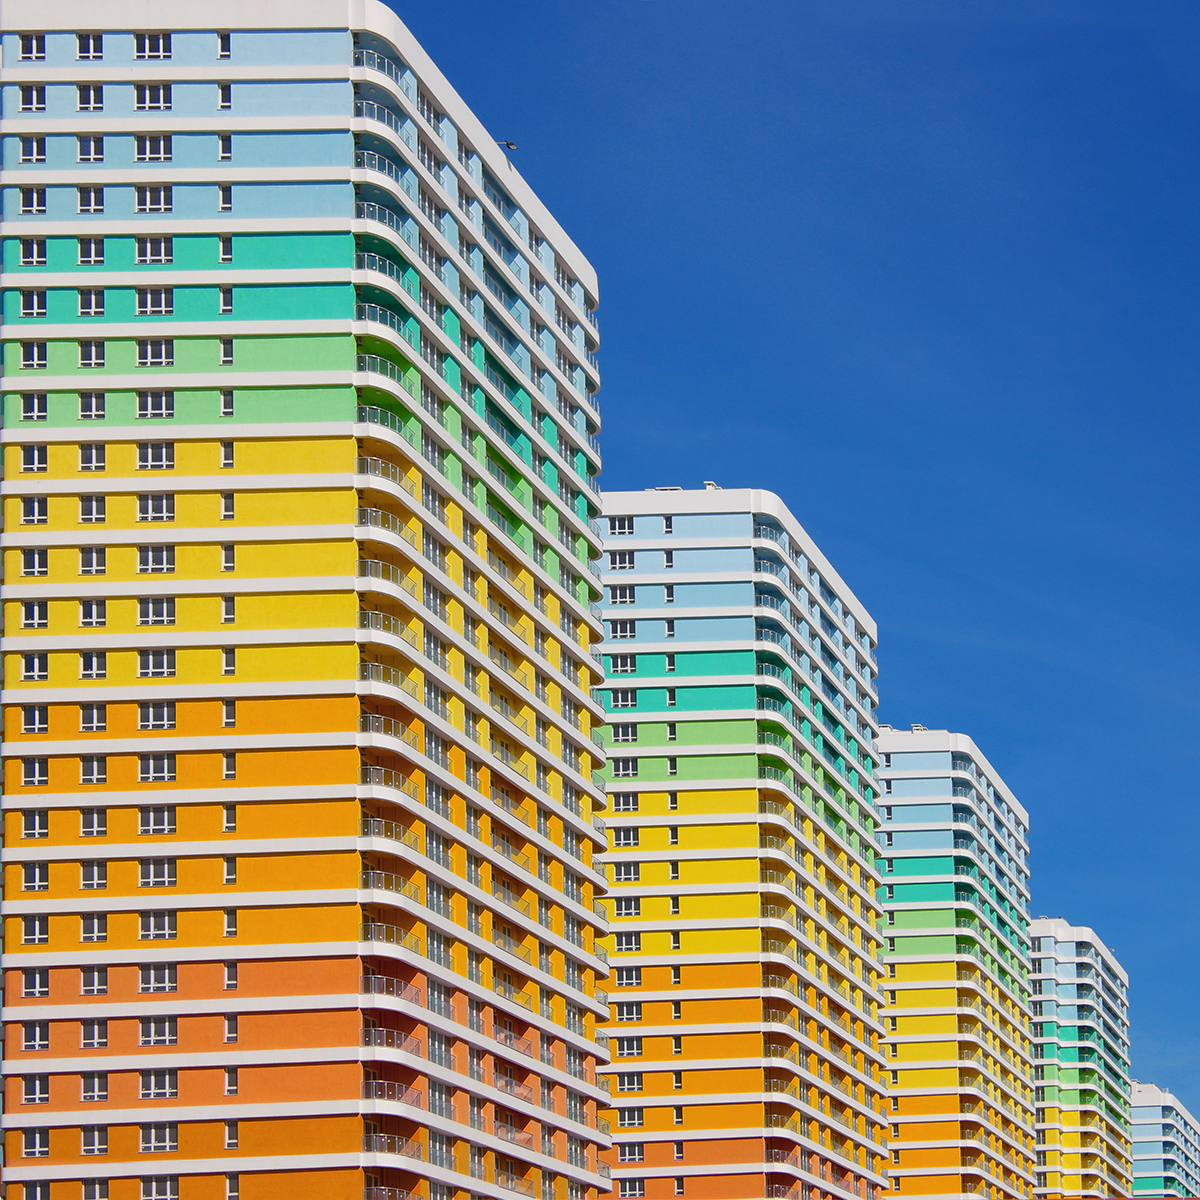 Stick Together Team by Yener Torun - Life-Styled.net